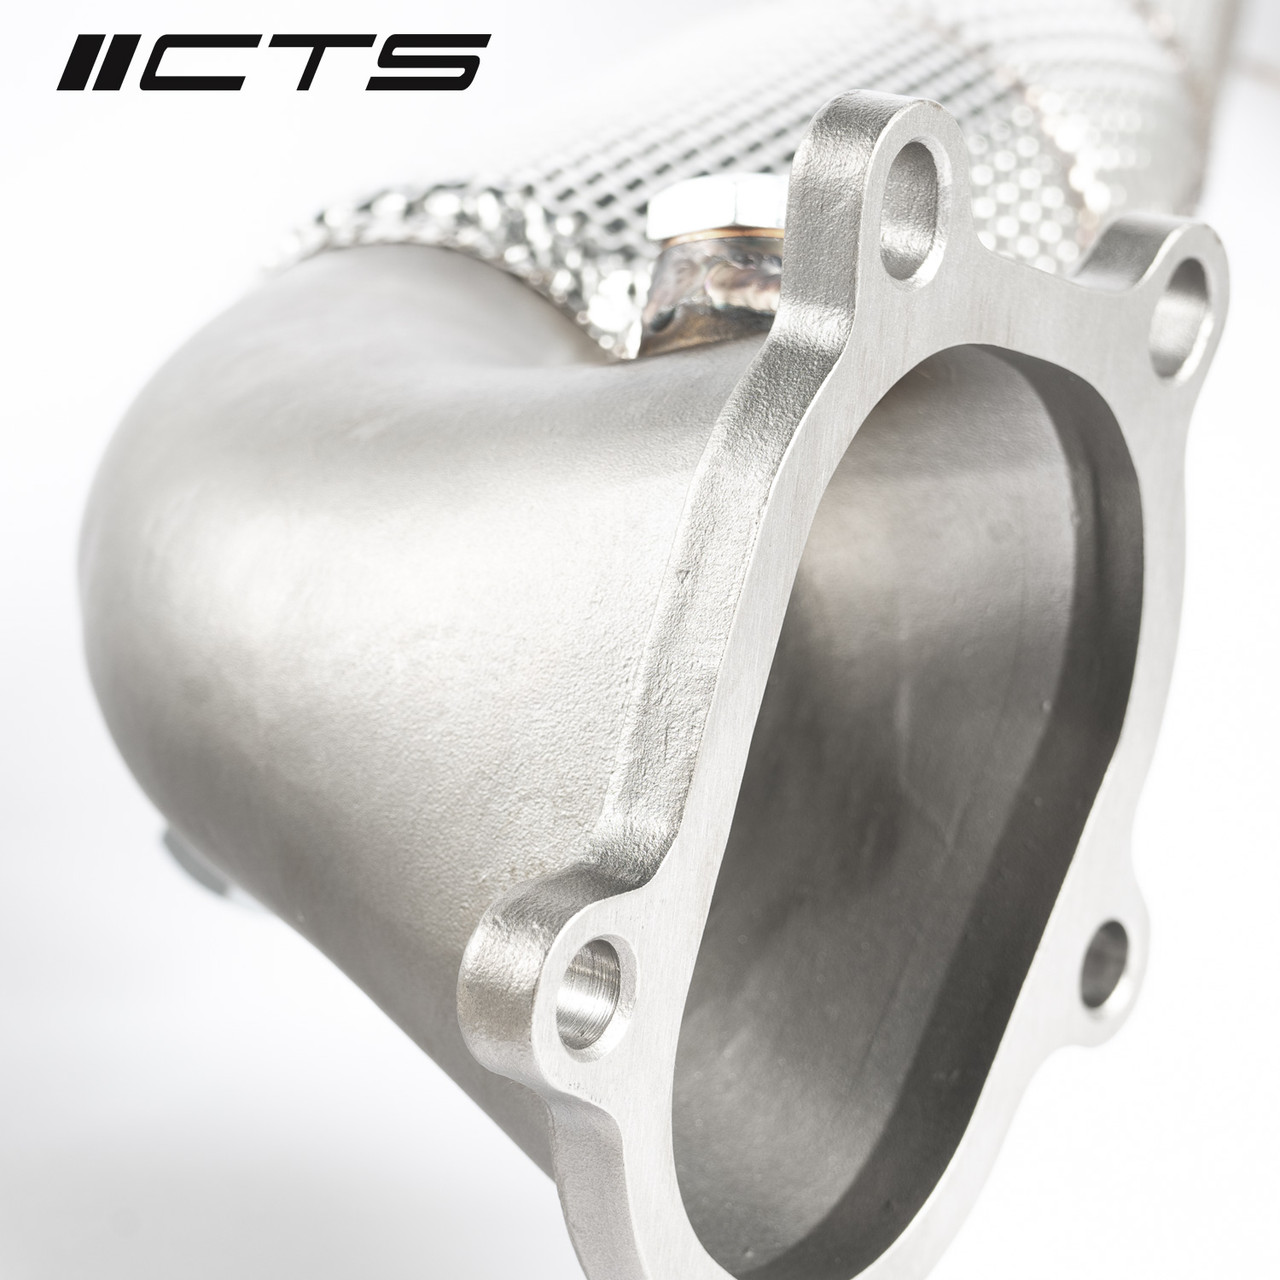 CTS Turbo Audi C7/C7.5 S6/S7/RS7 4.0T Cast Downpipe Race Set (NOT LEGAL FOR ROAD USE)